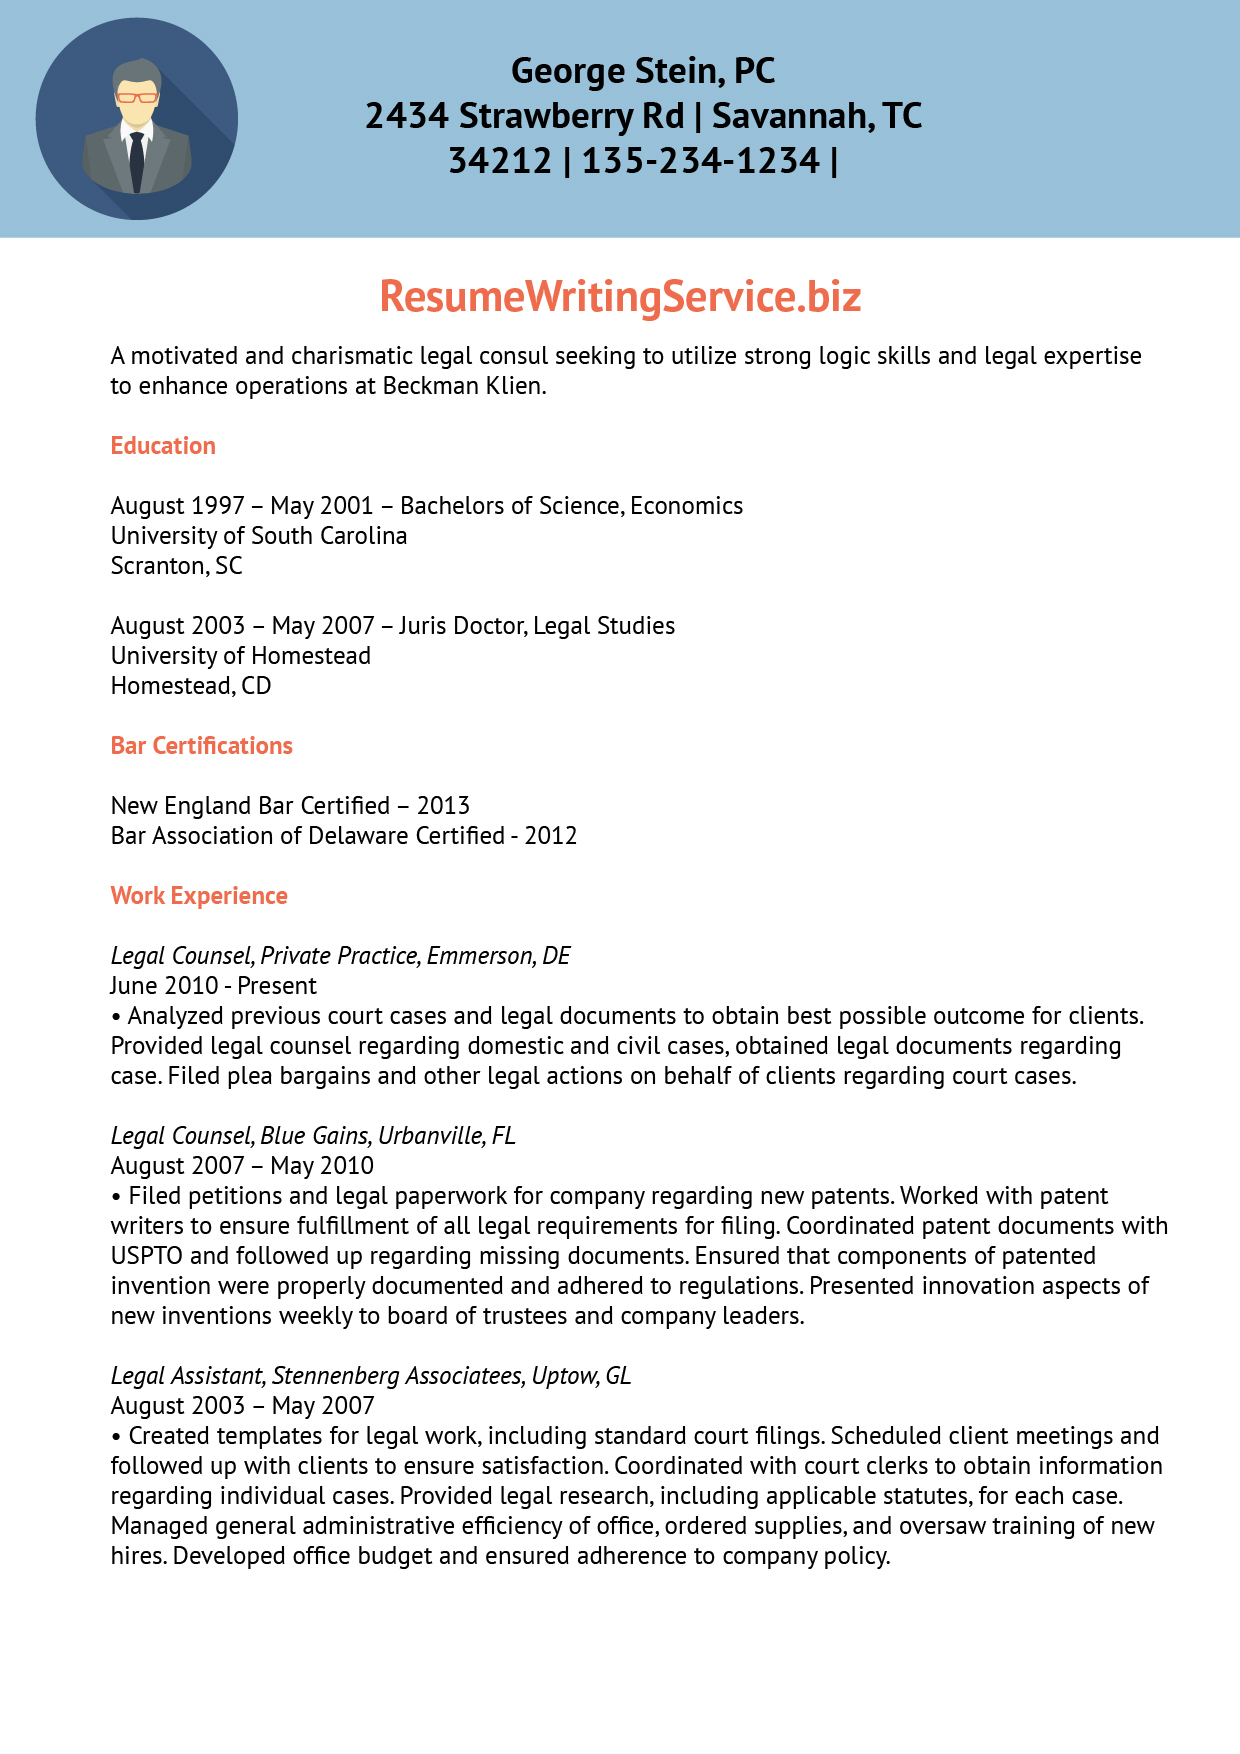 Legitimate healthcare resume writing service